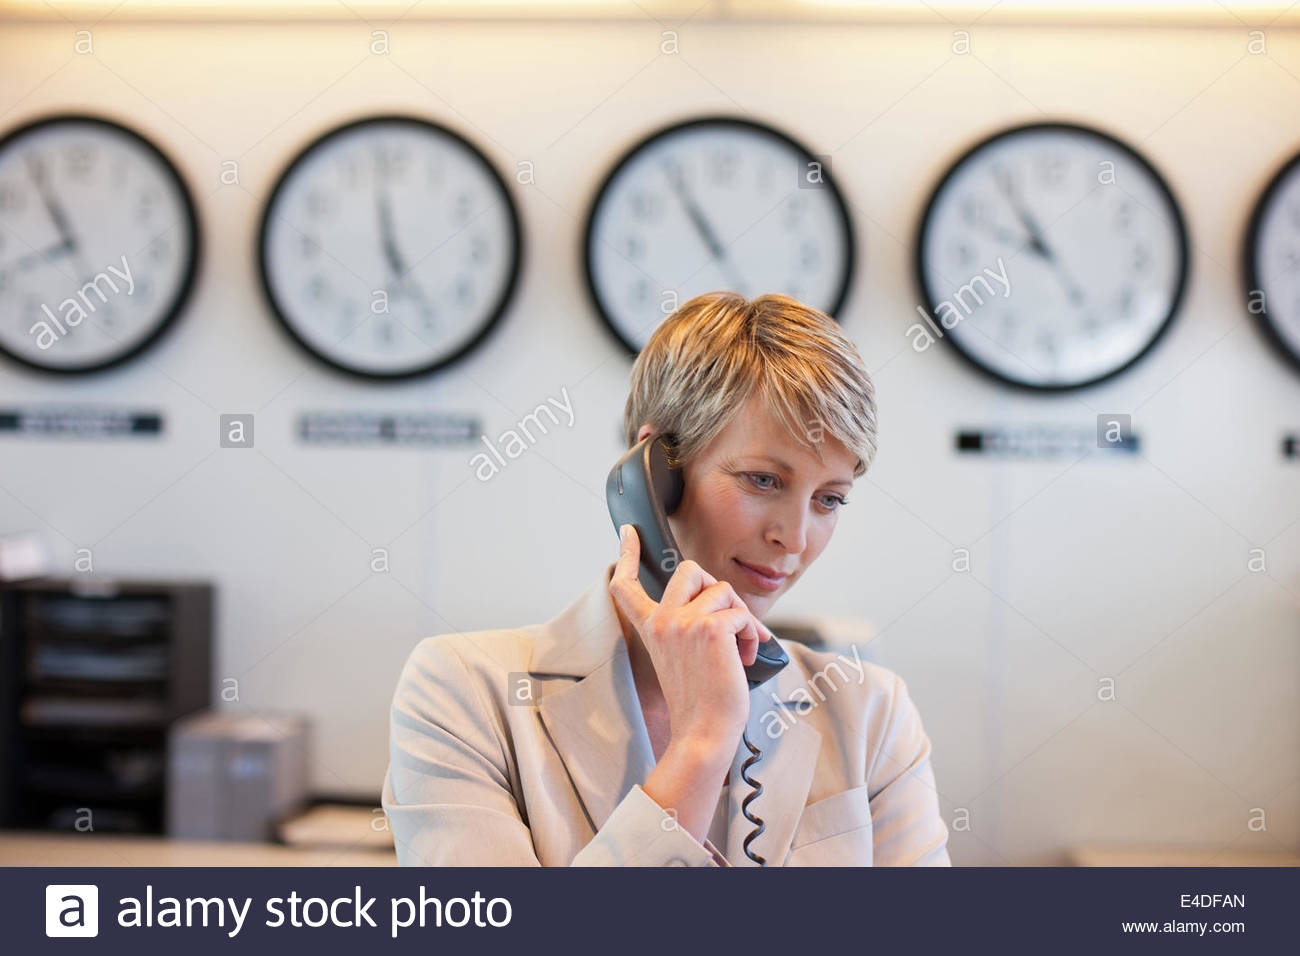 Businesswoman talking on phone in office - Stock Image